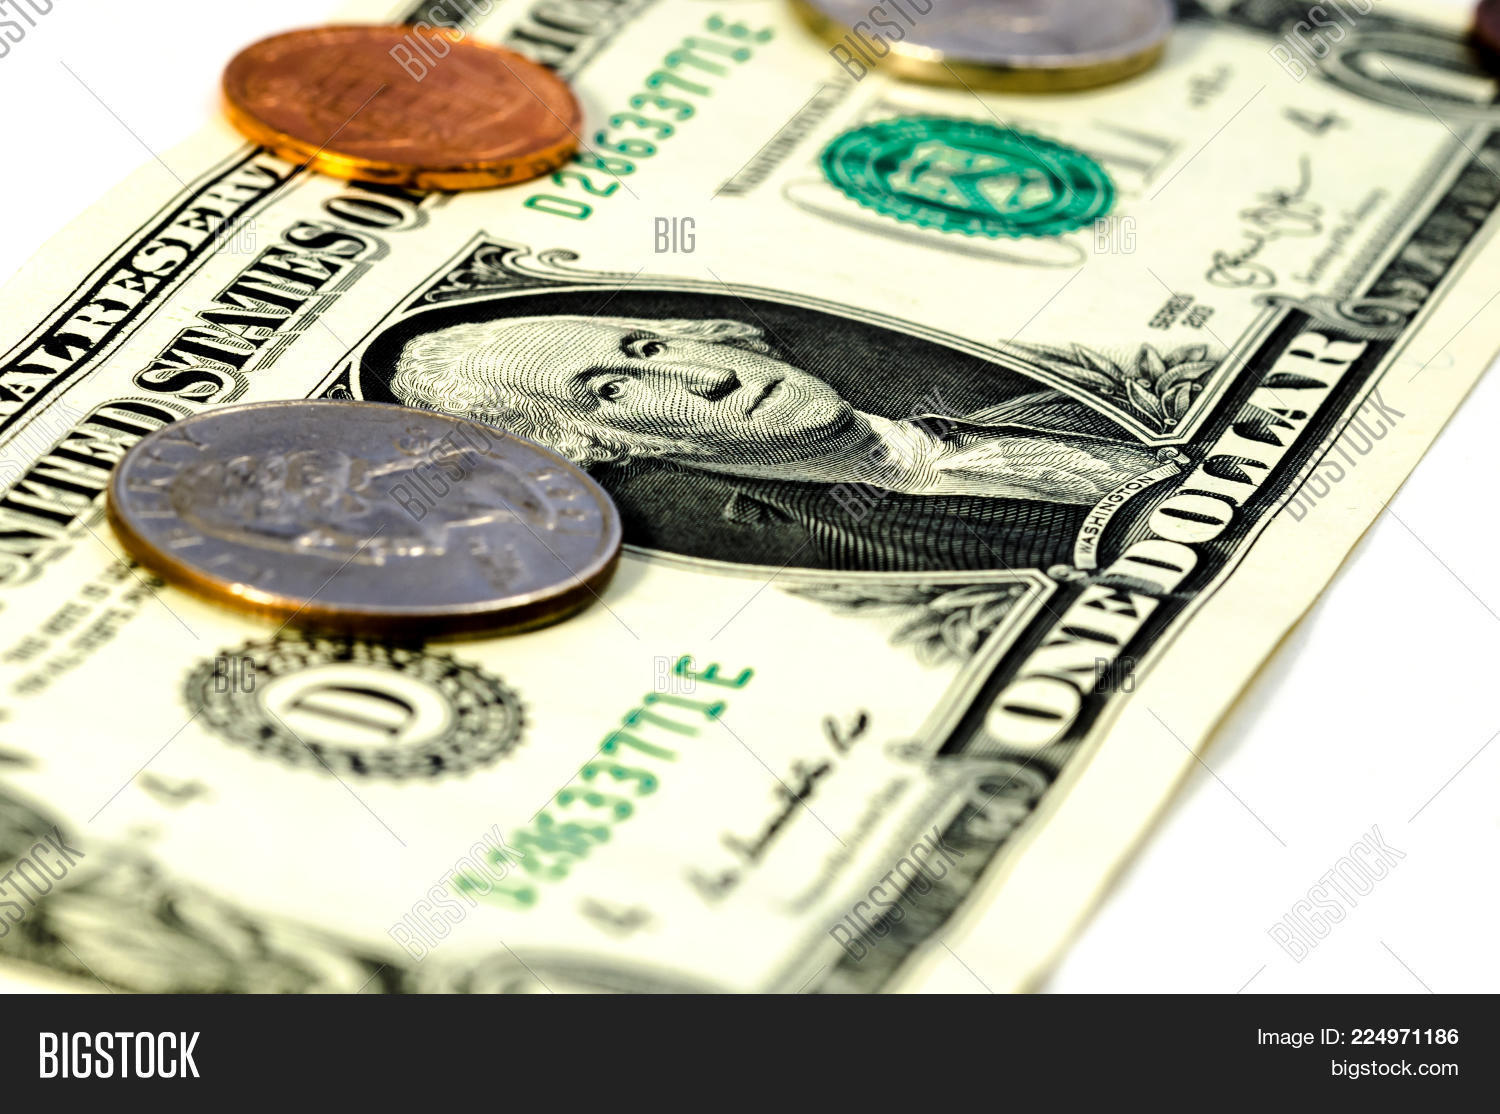 Close Dollar Bill Cent Image Photo Free Trial Bigstock